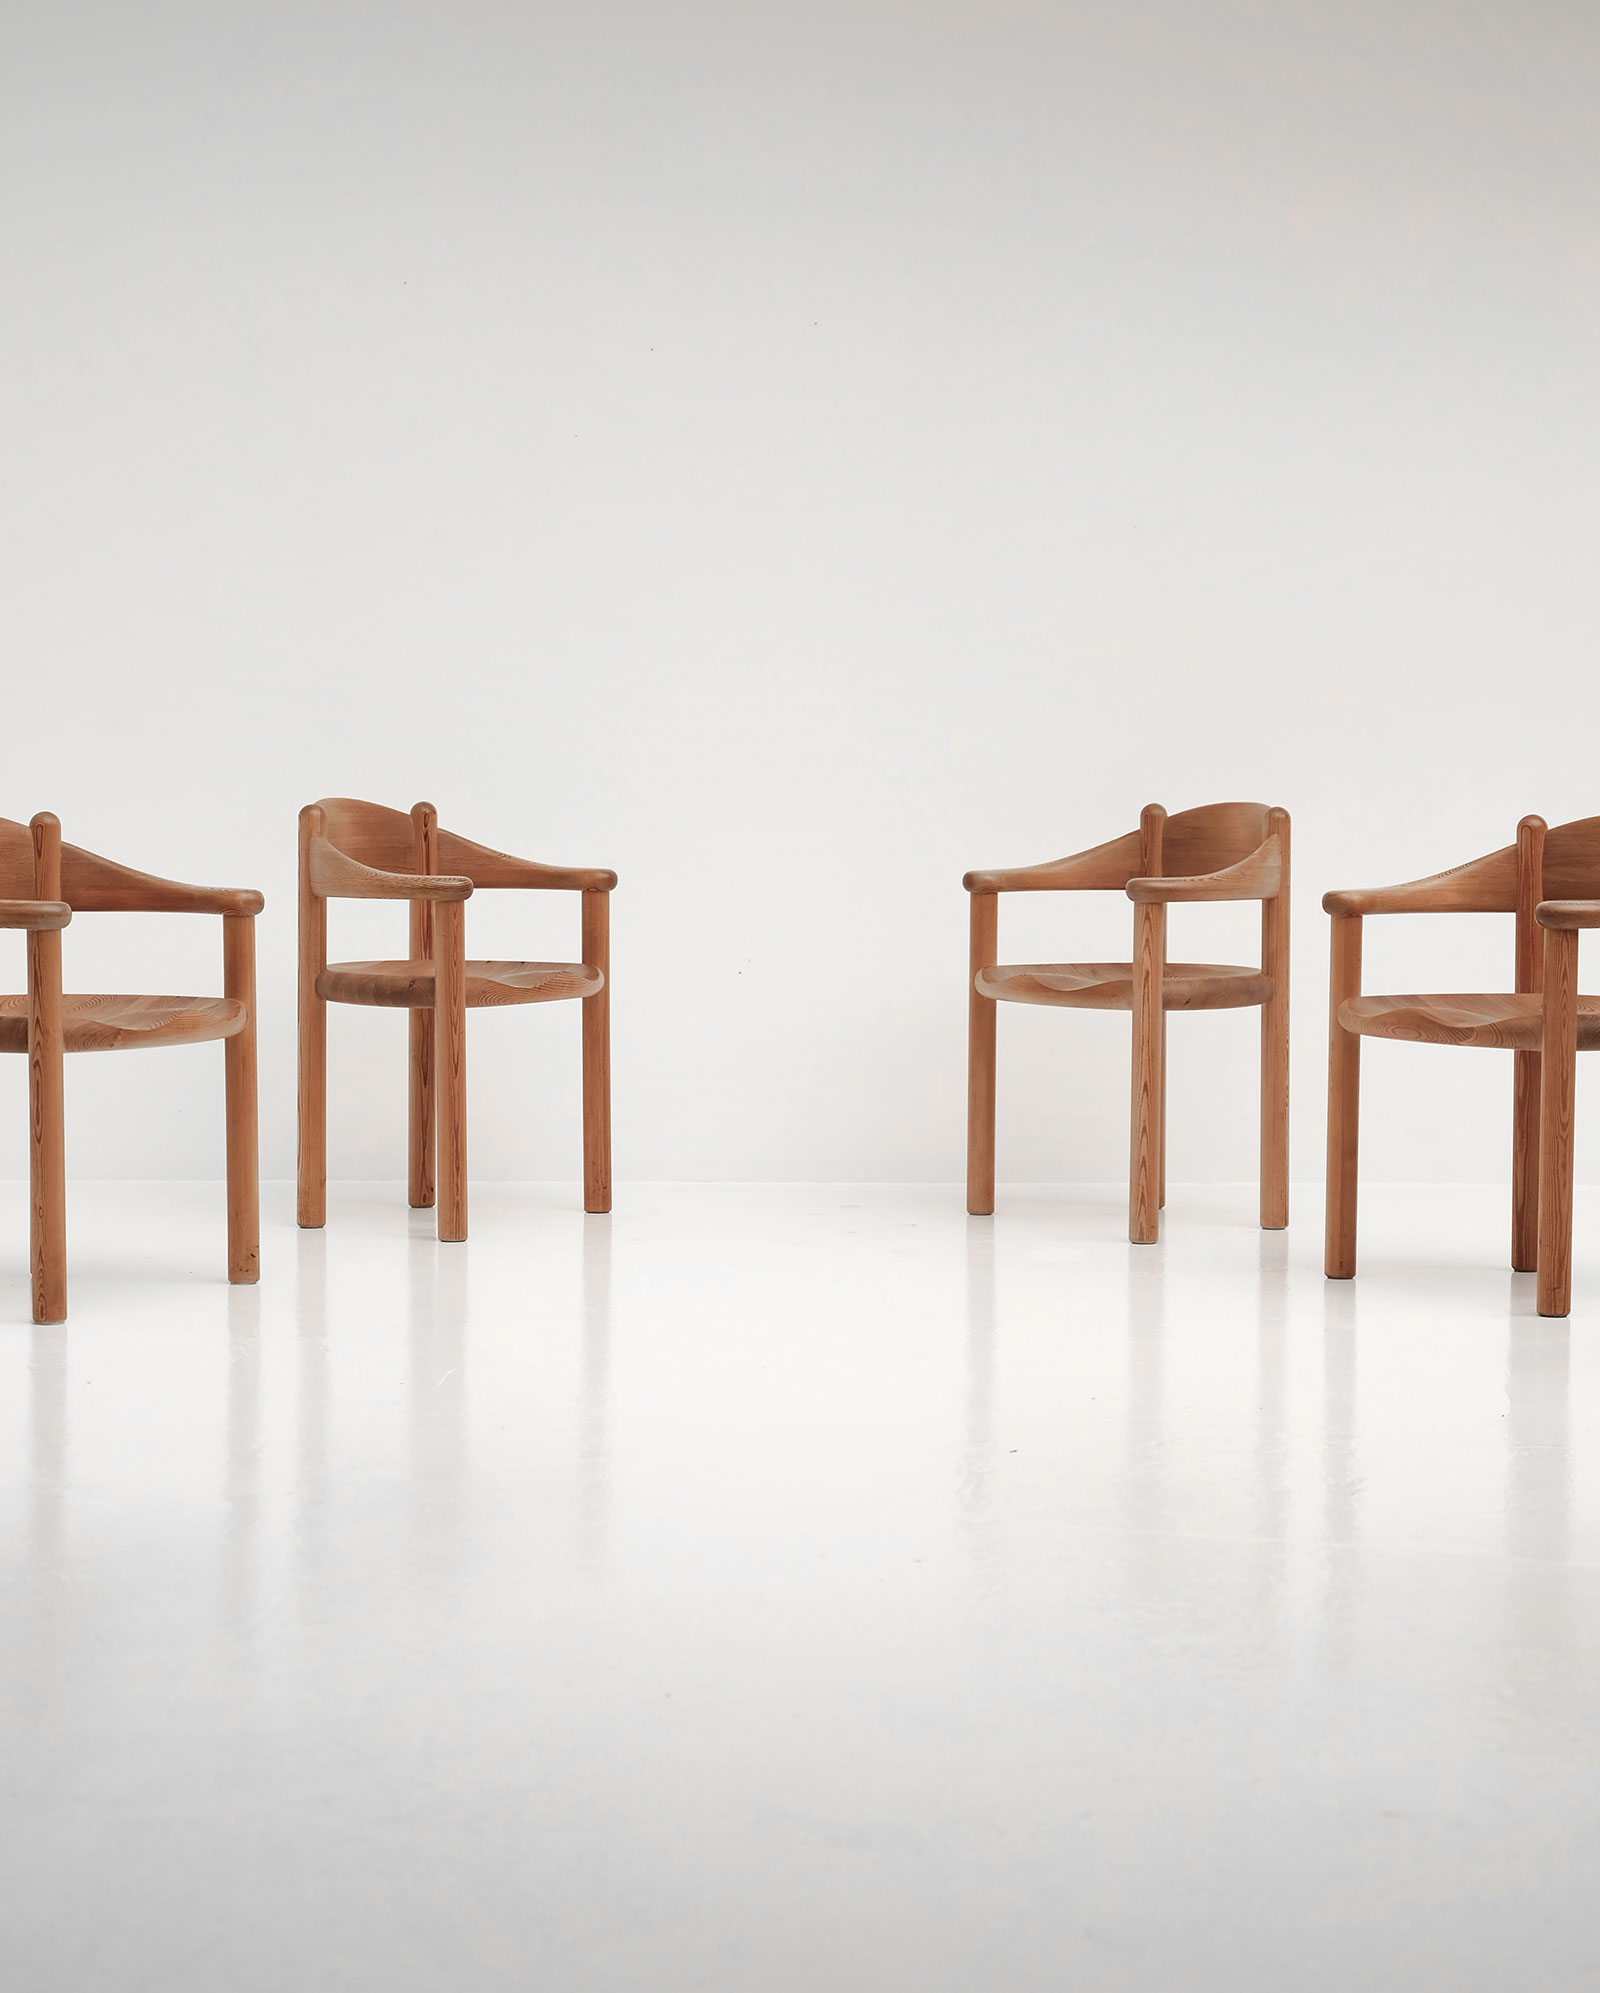 rainer daumiller for hirtshal sawmill 6 chairs